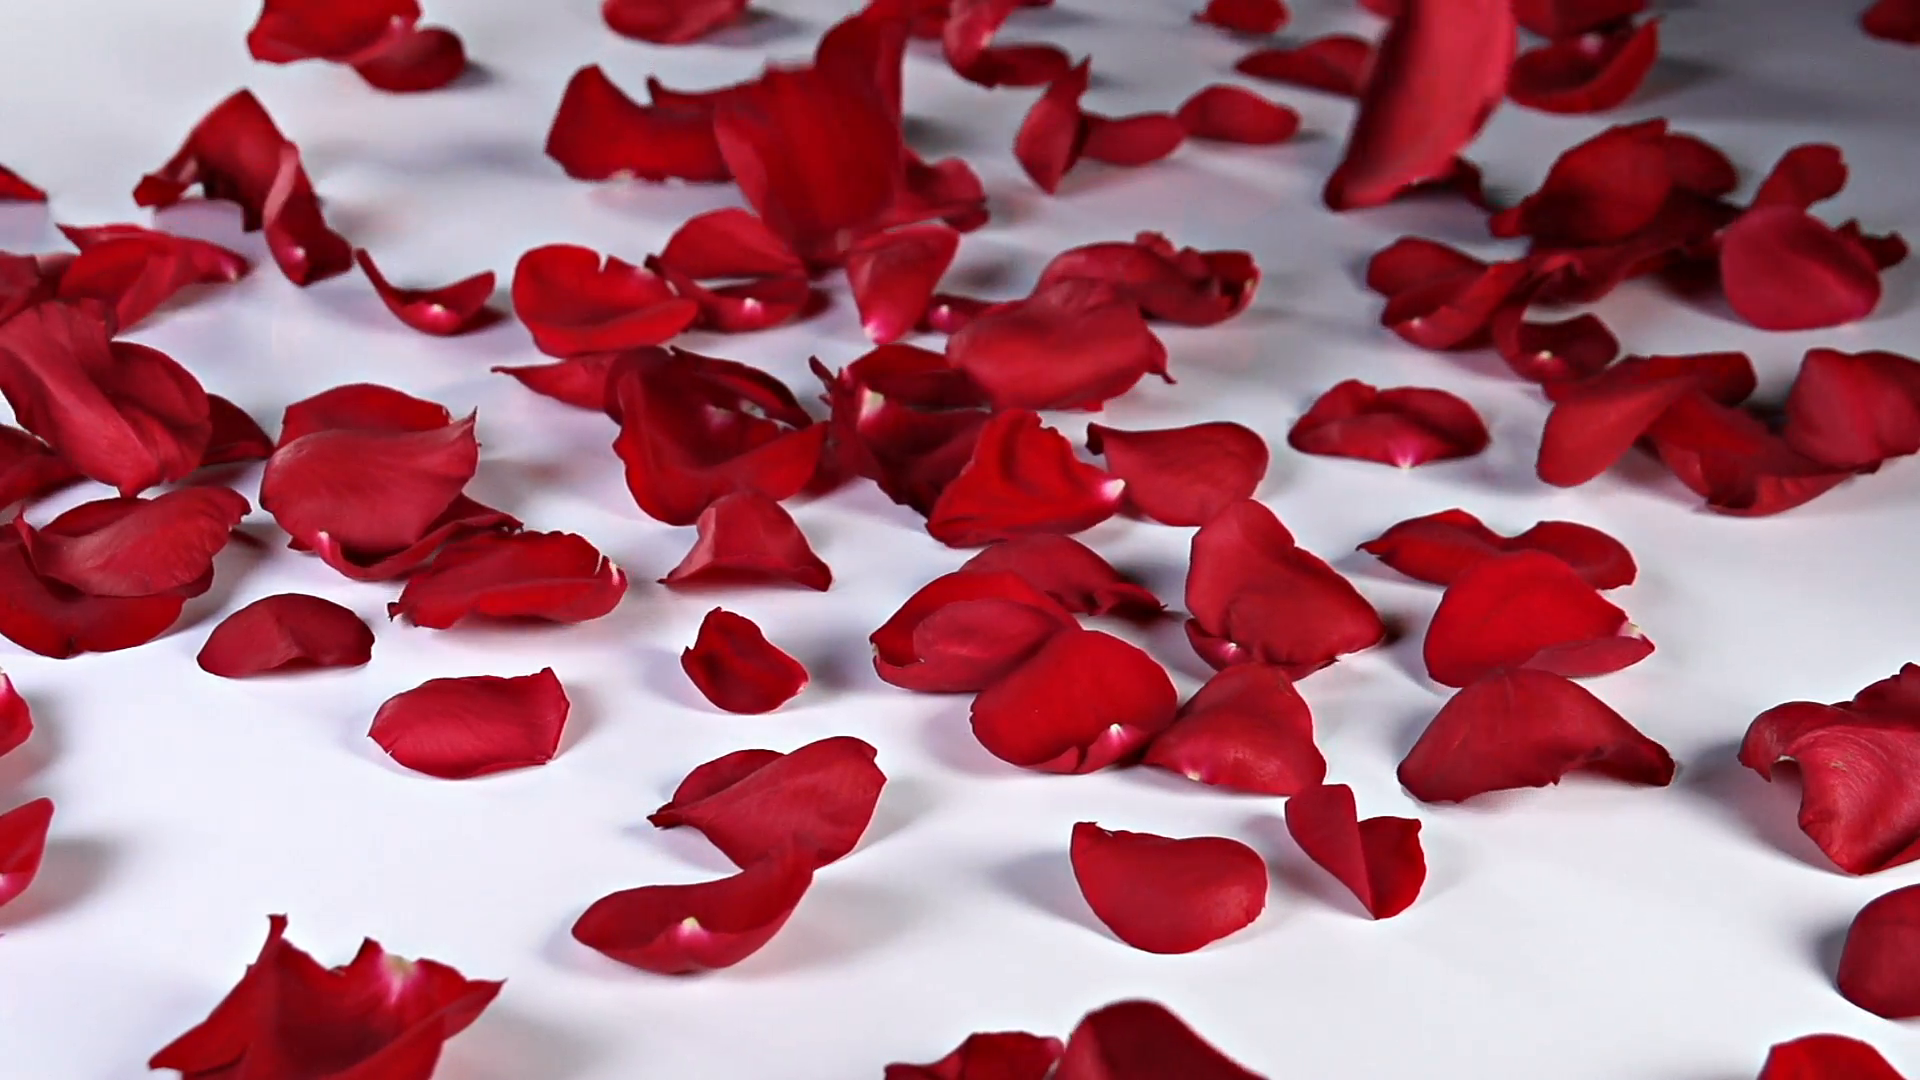 Red Rose Petals Falling Stock Video Footage - VideoBlocks